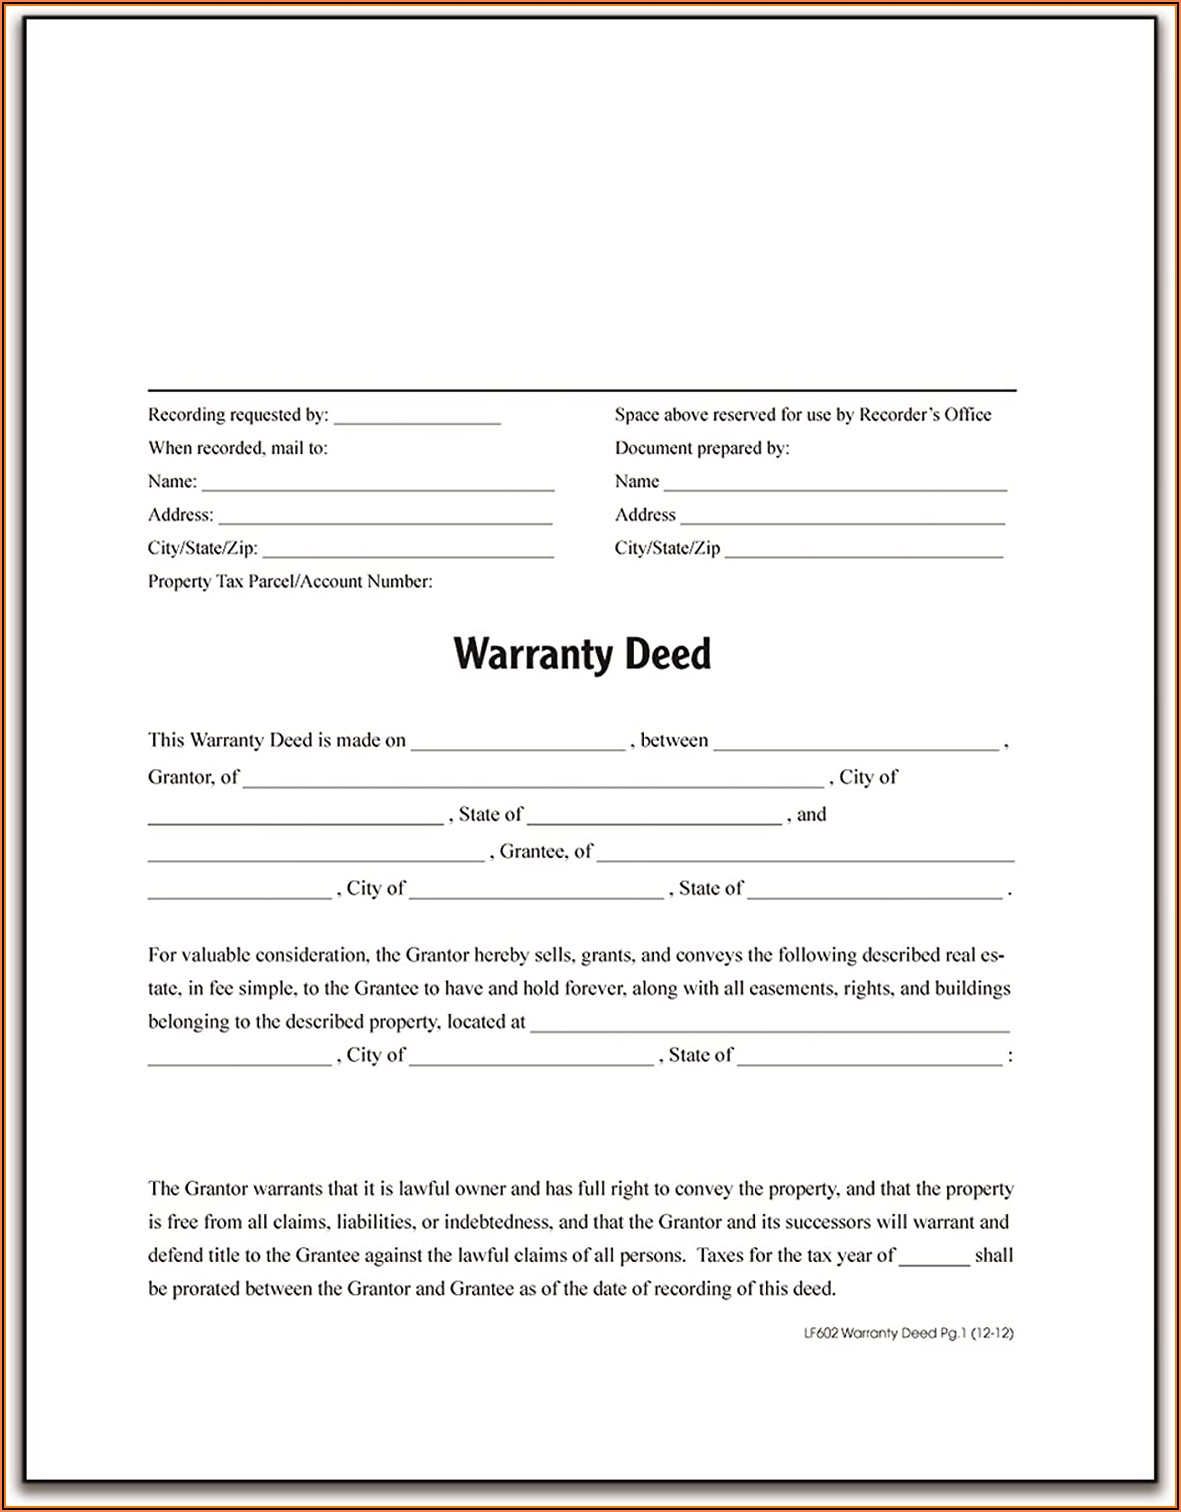 Warranty Deed Forms